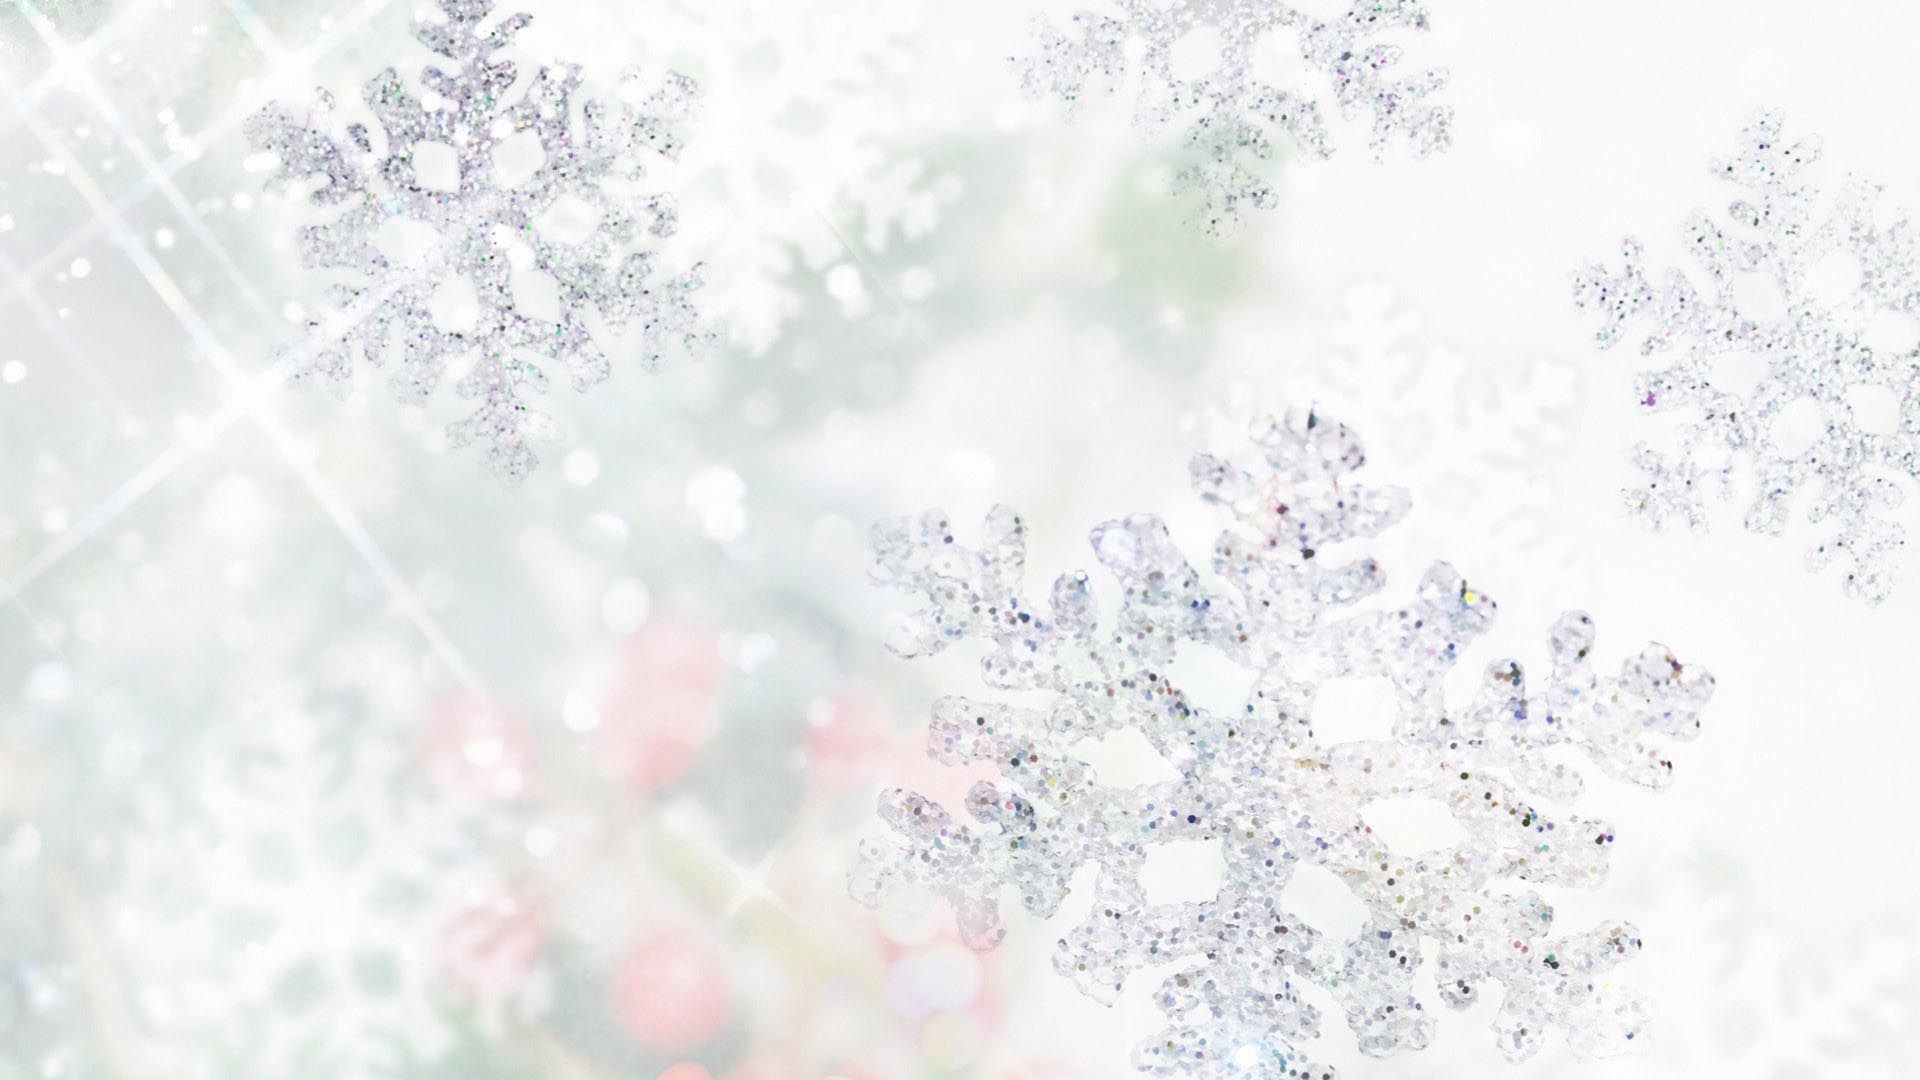 New Year With Snowflakes Wallpaper Image